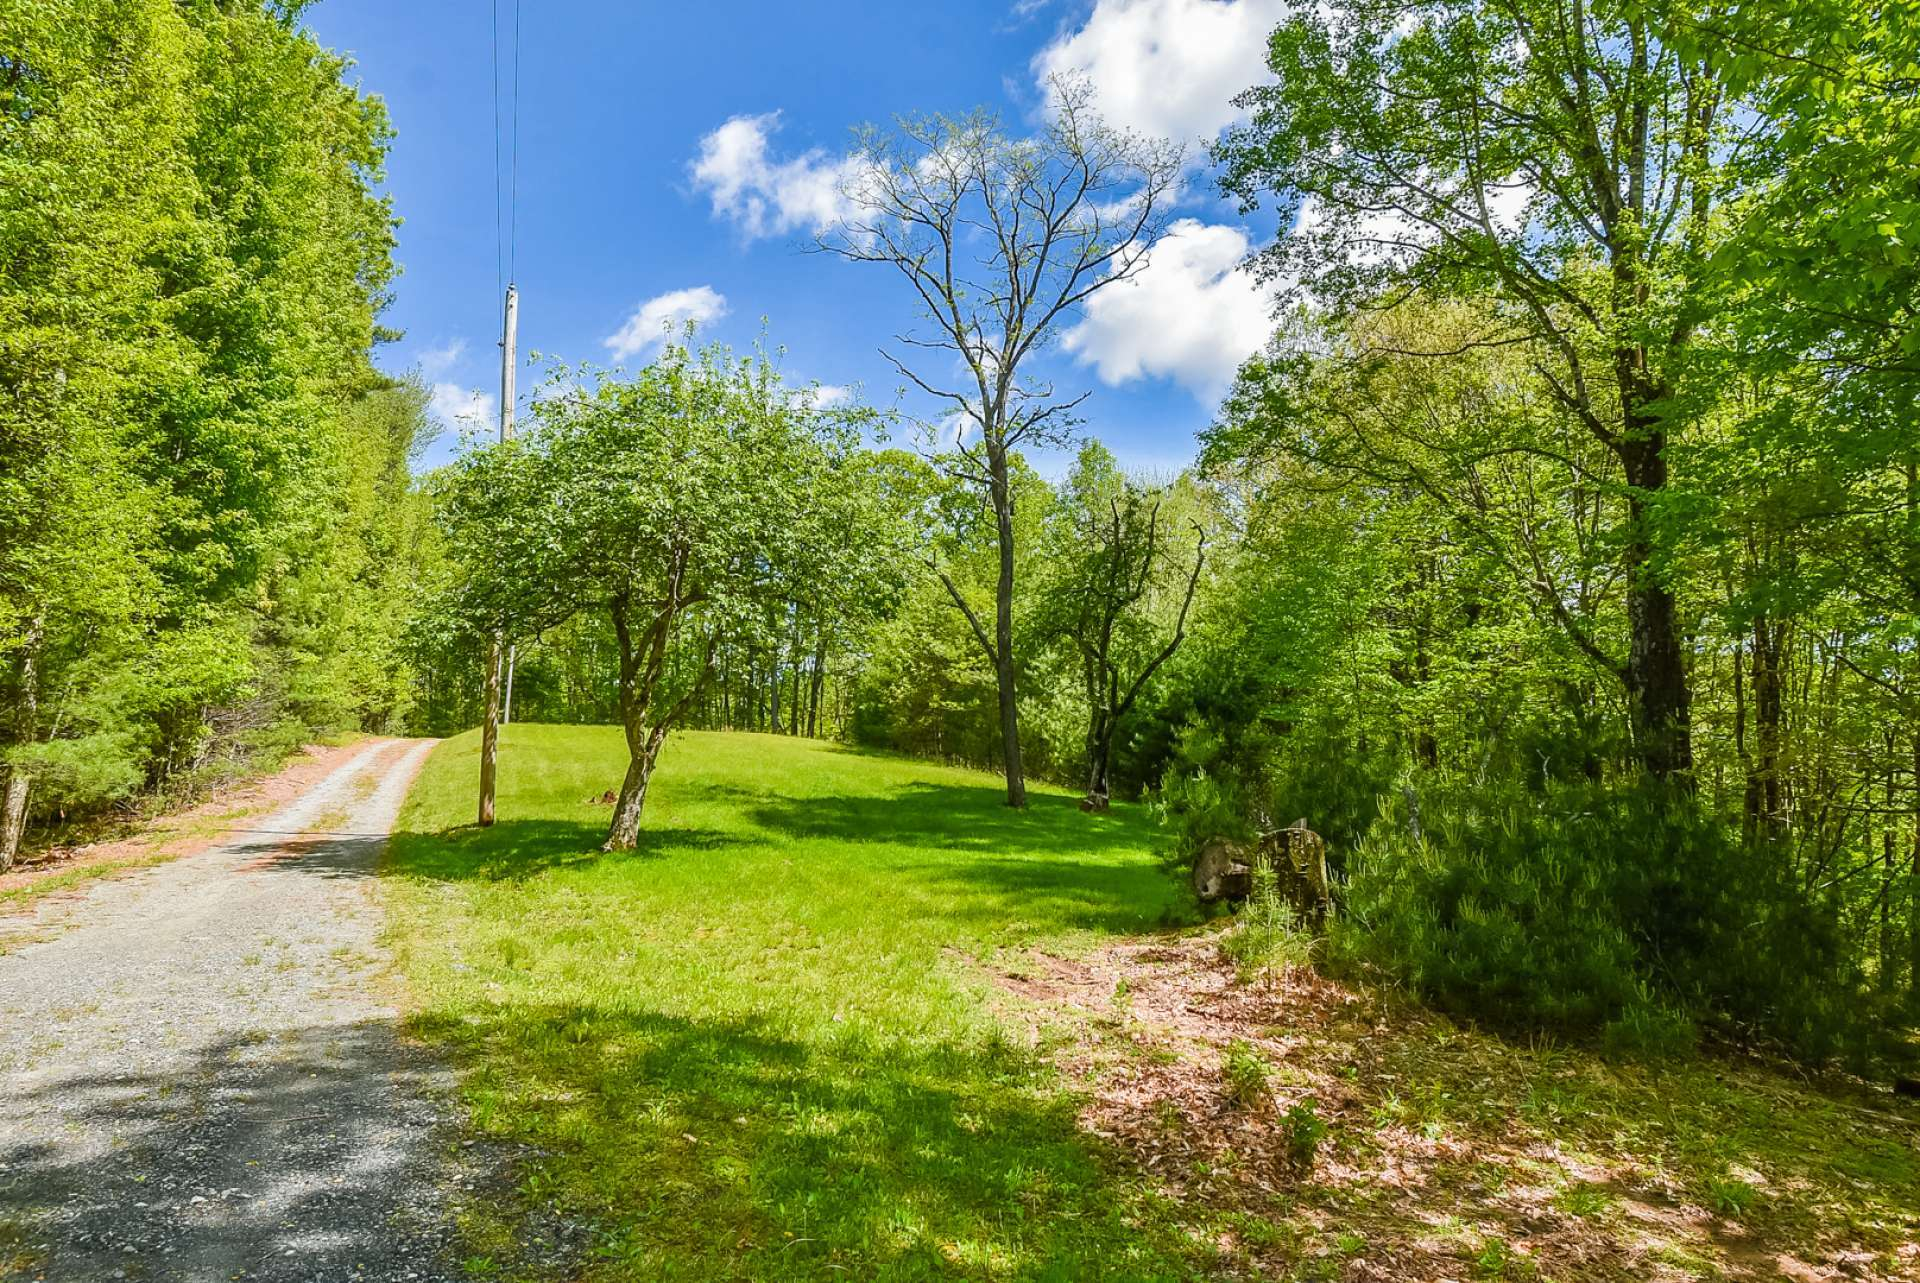 The 16+ acre with an open area with apple trees, surrounded by native hardwoods, evergreens and mountain foliage.